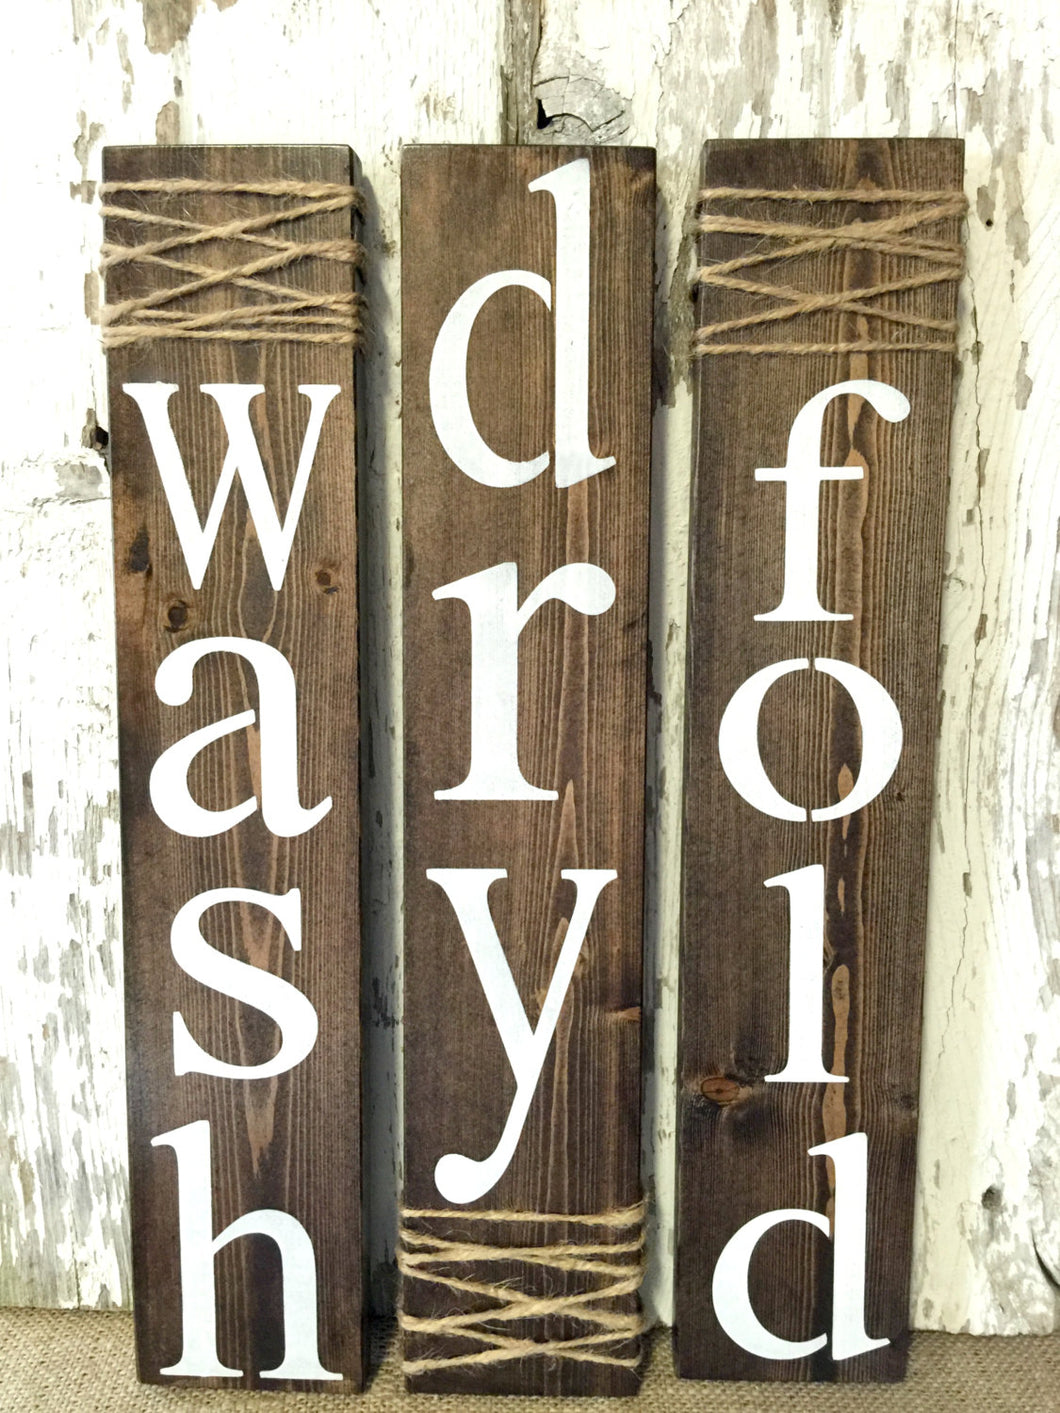 Laundry Room Signs - Laundry Room Decor - Rustic Laundry Signs - Laundry Wall Hangings - Wood Laundry Decor - Wash Sign - Fold Sign-Dry Sign